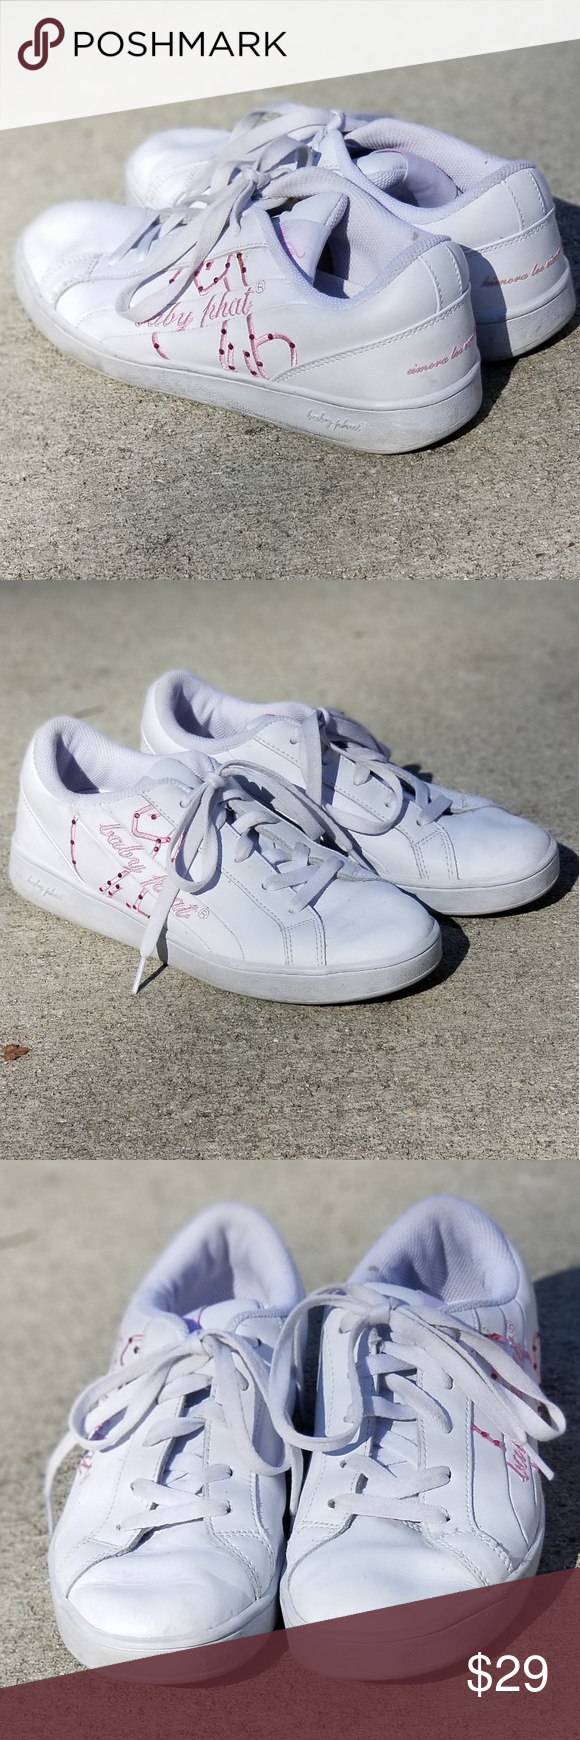 Baby Phat Tennis Shoes Boys 7.5 or Women s 9 Unisex Baby Phat Tennis Shoes  White and pink Used but in great condition Boys size is 7 1 2 Girls size is  9 ... 276527c102